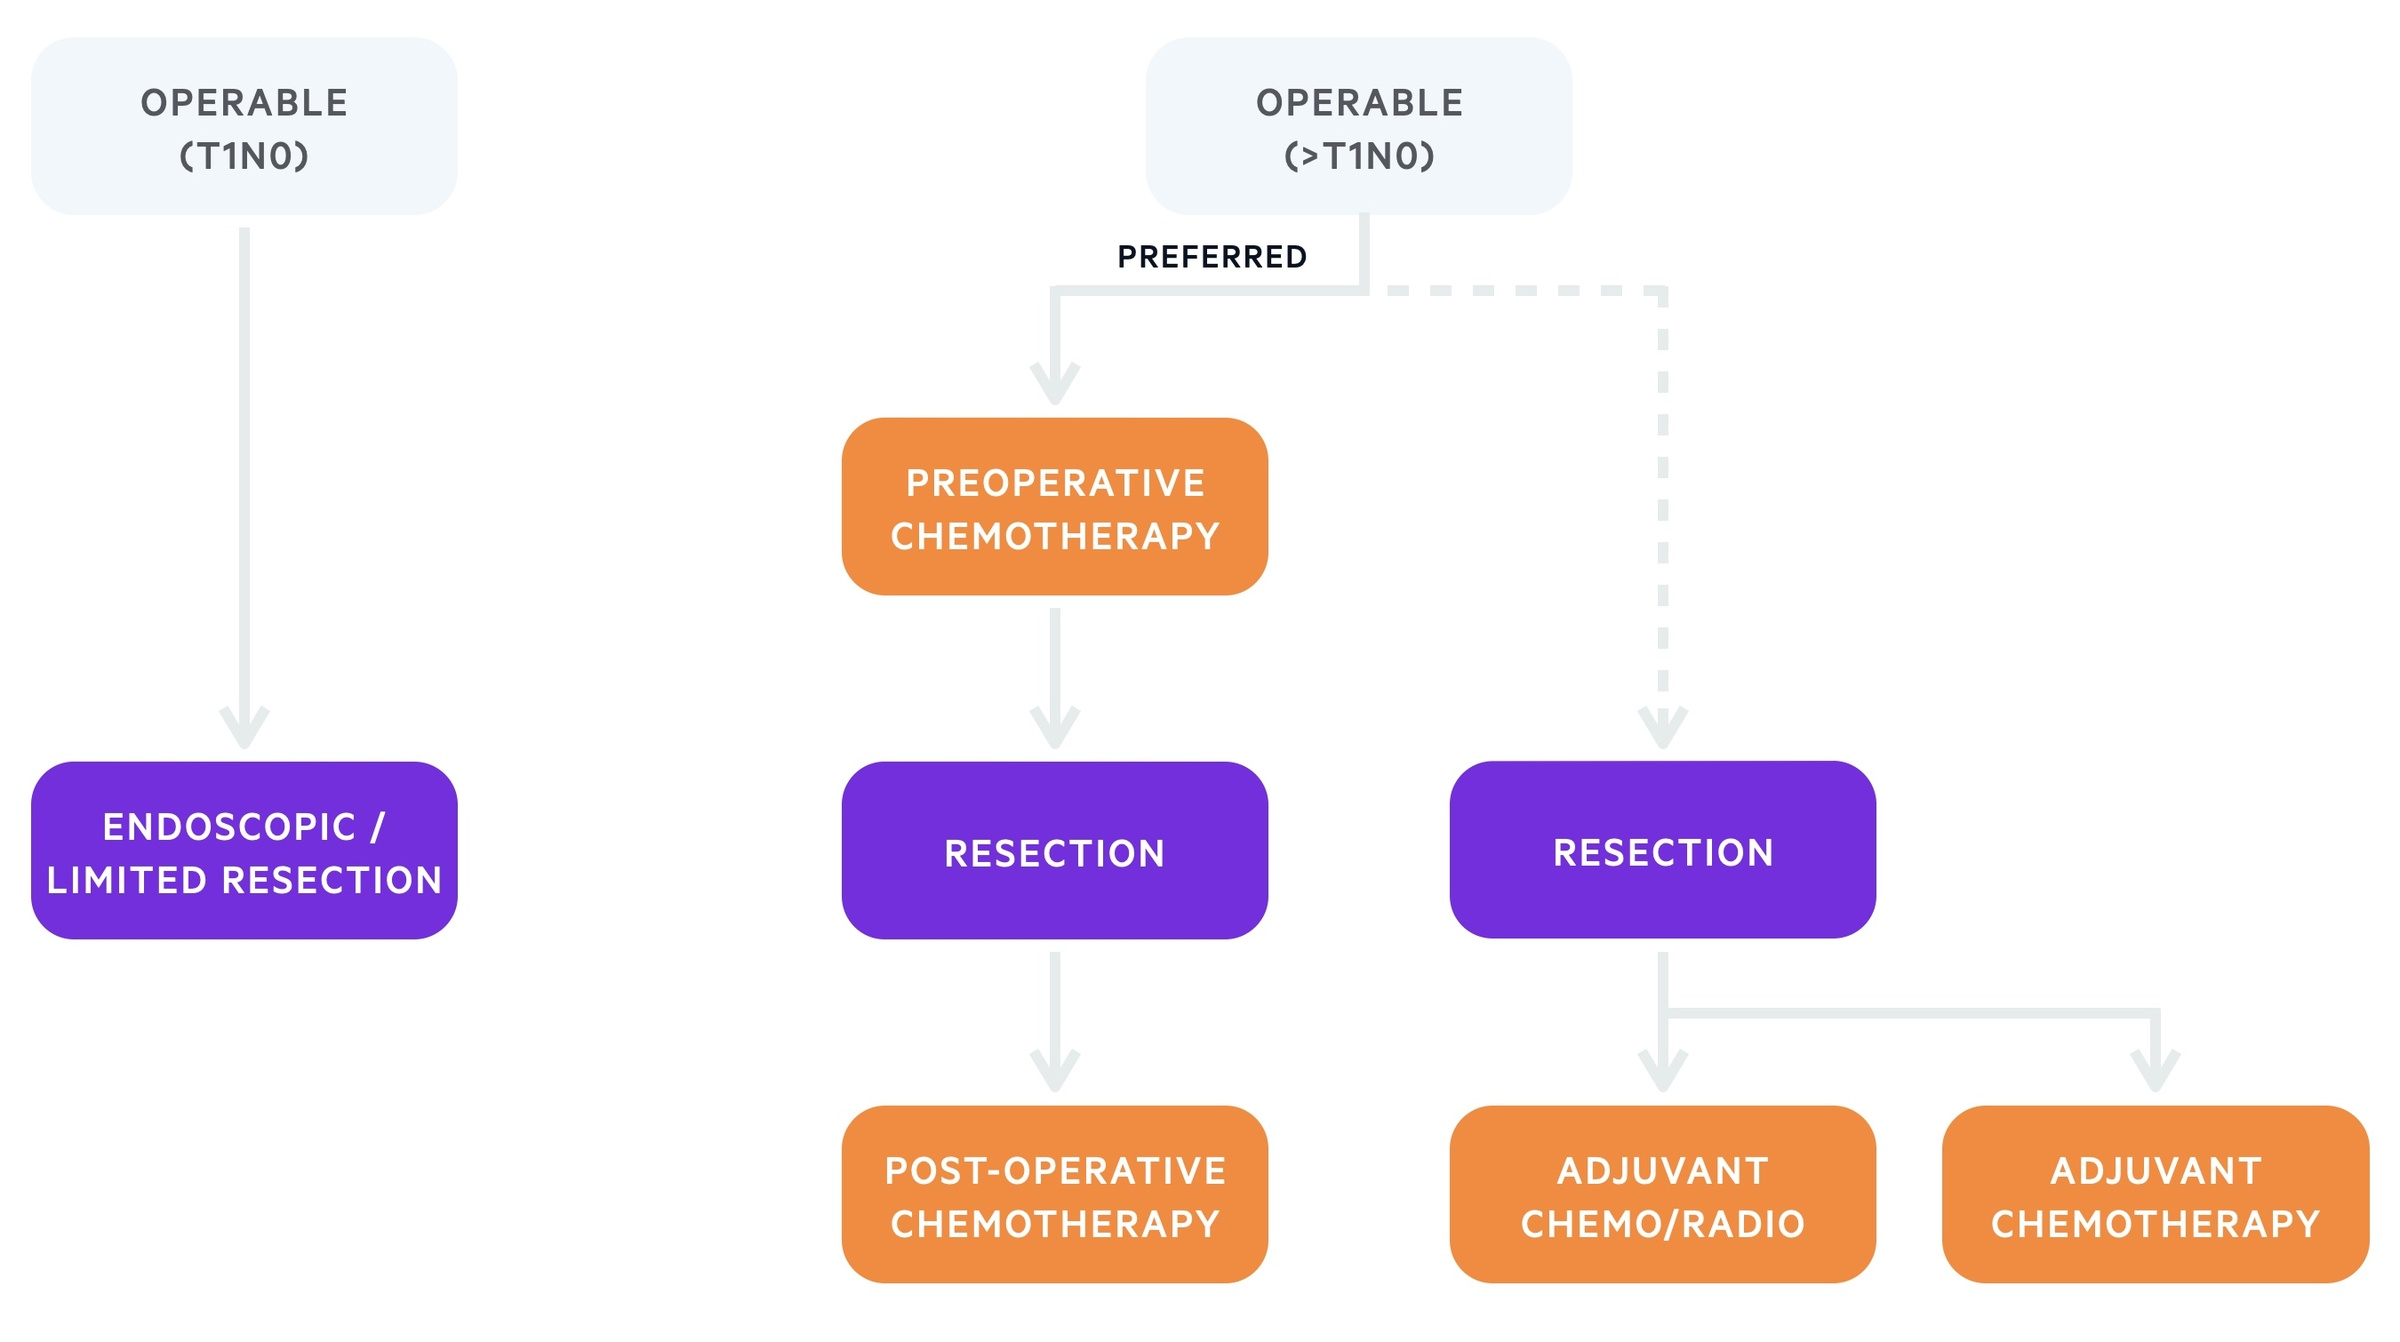 Management of operable gastric cancer